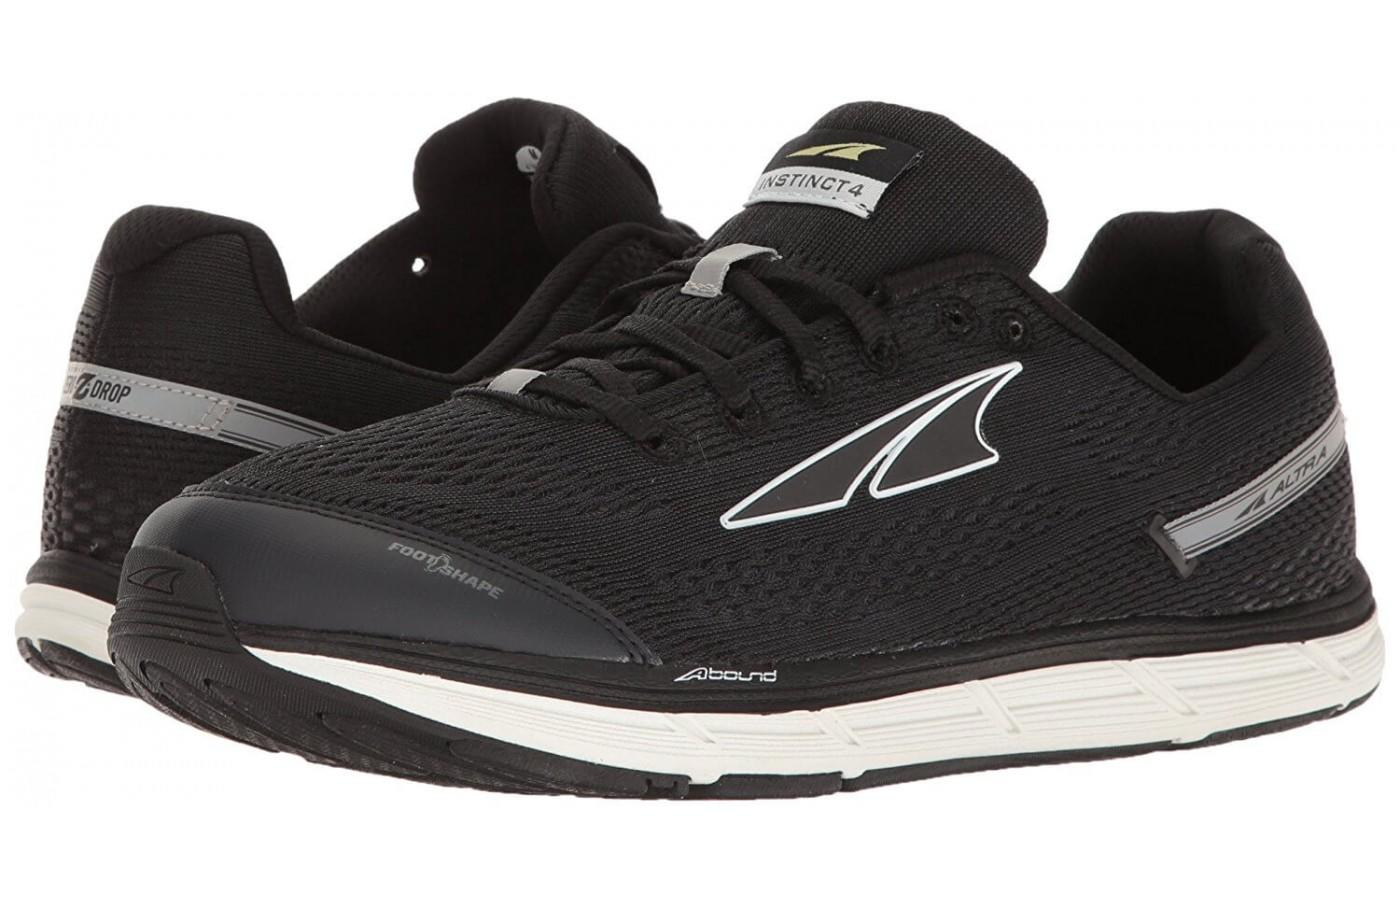 This shoe is very comfortable for long distance runs